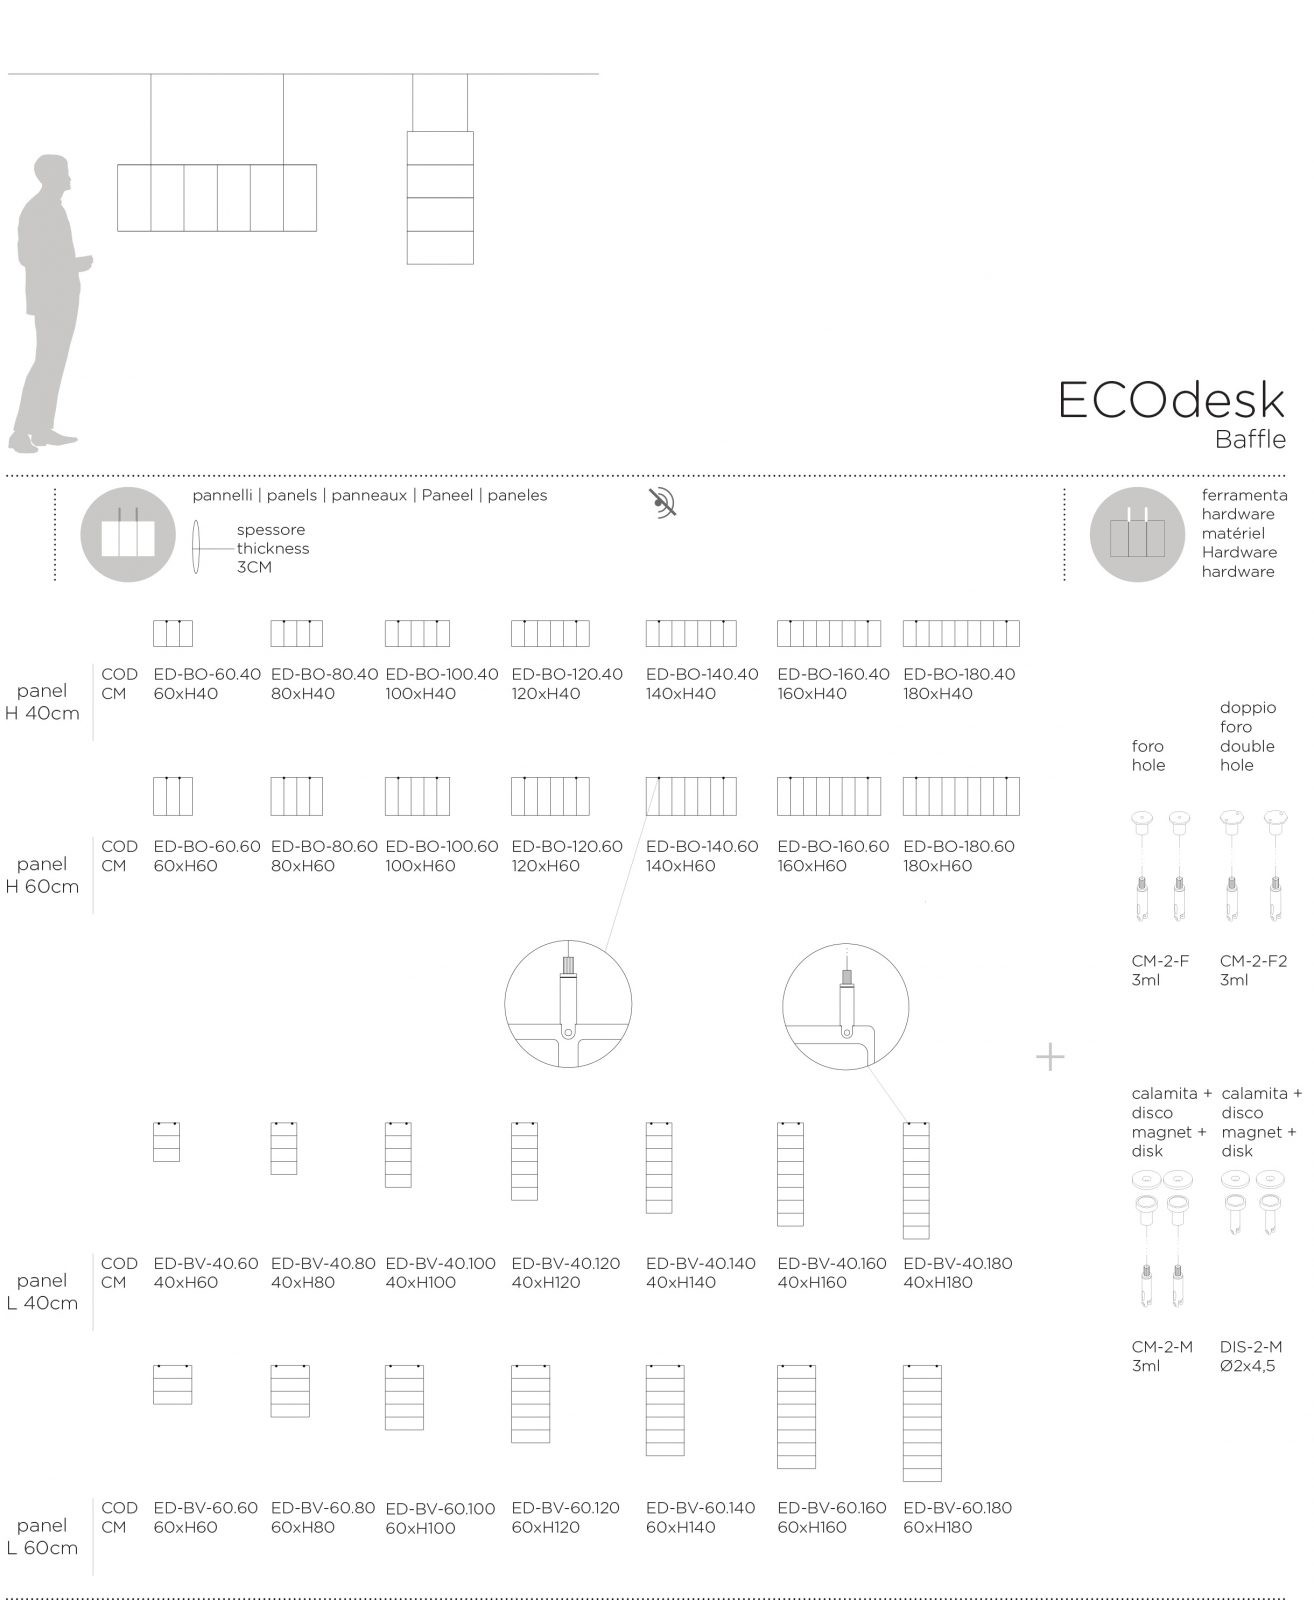 ECOdesk Dimensions